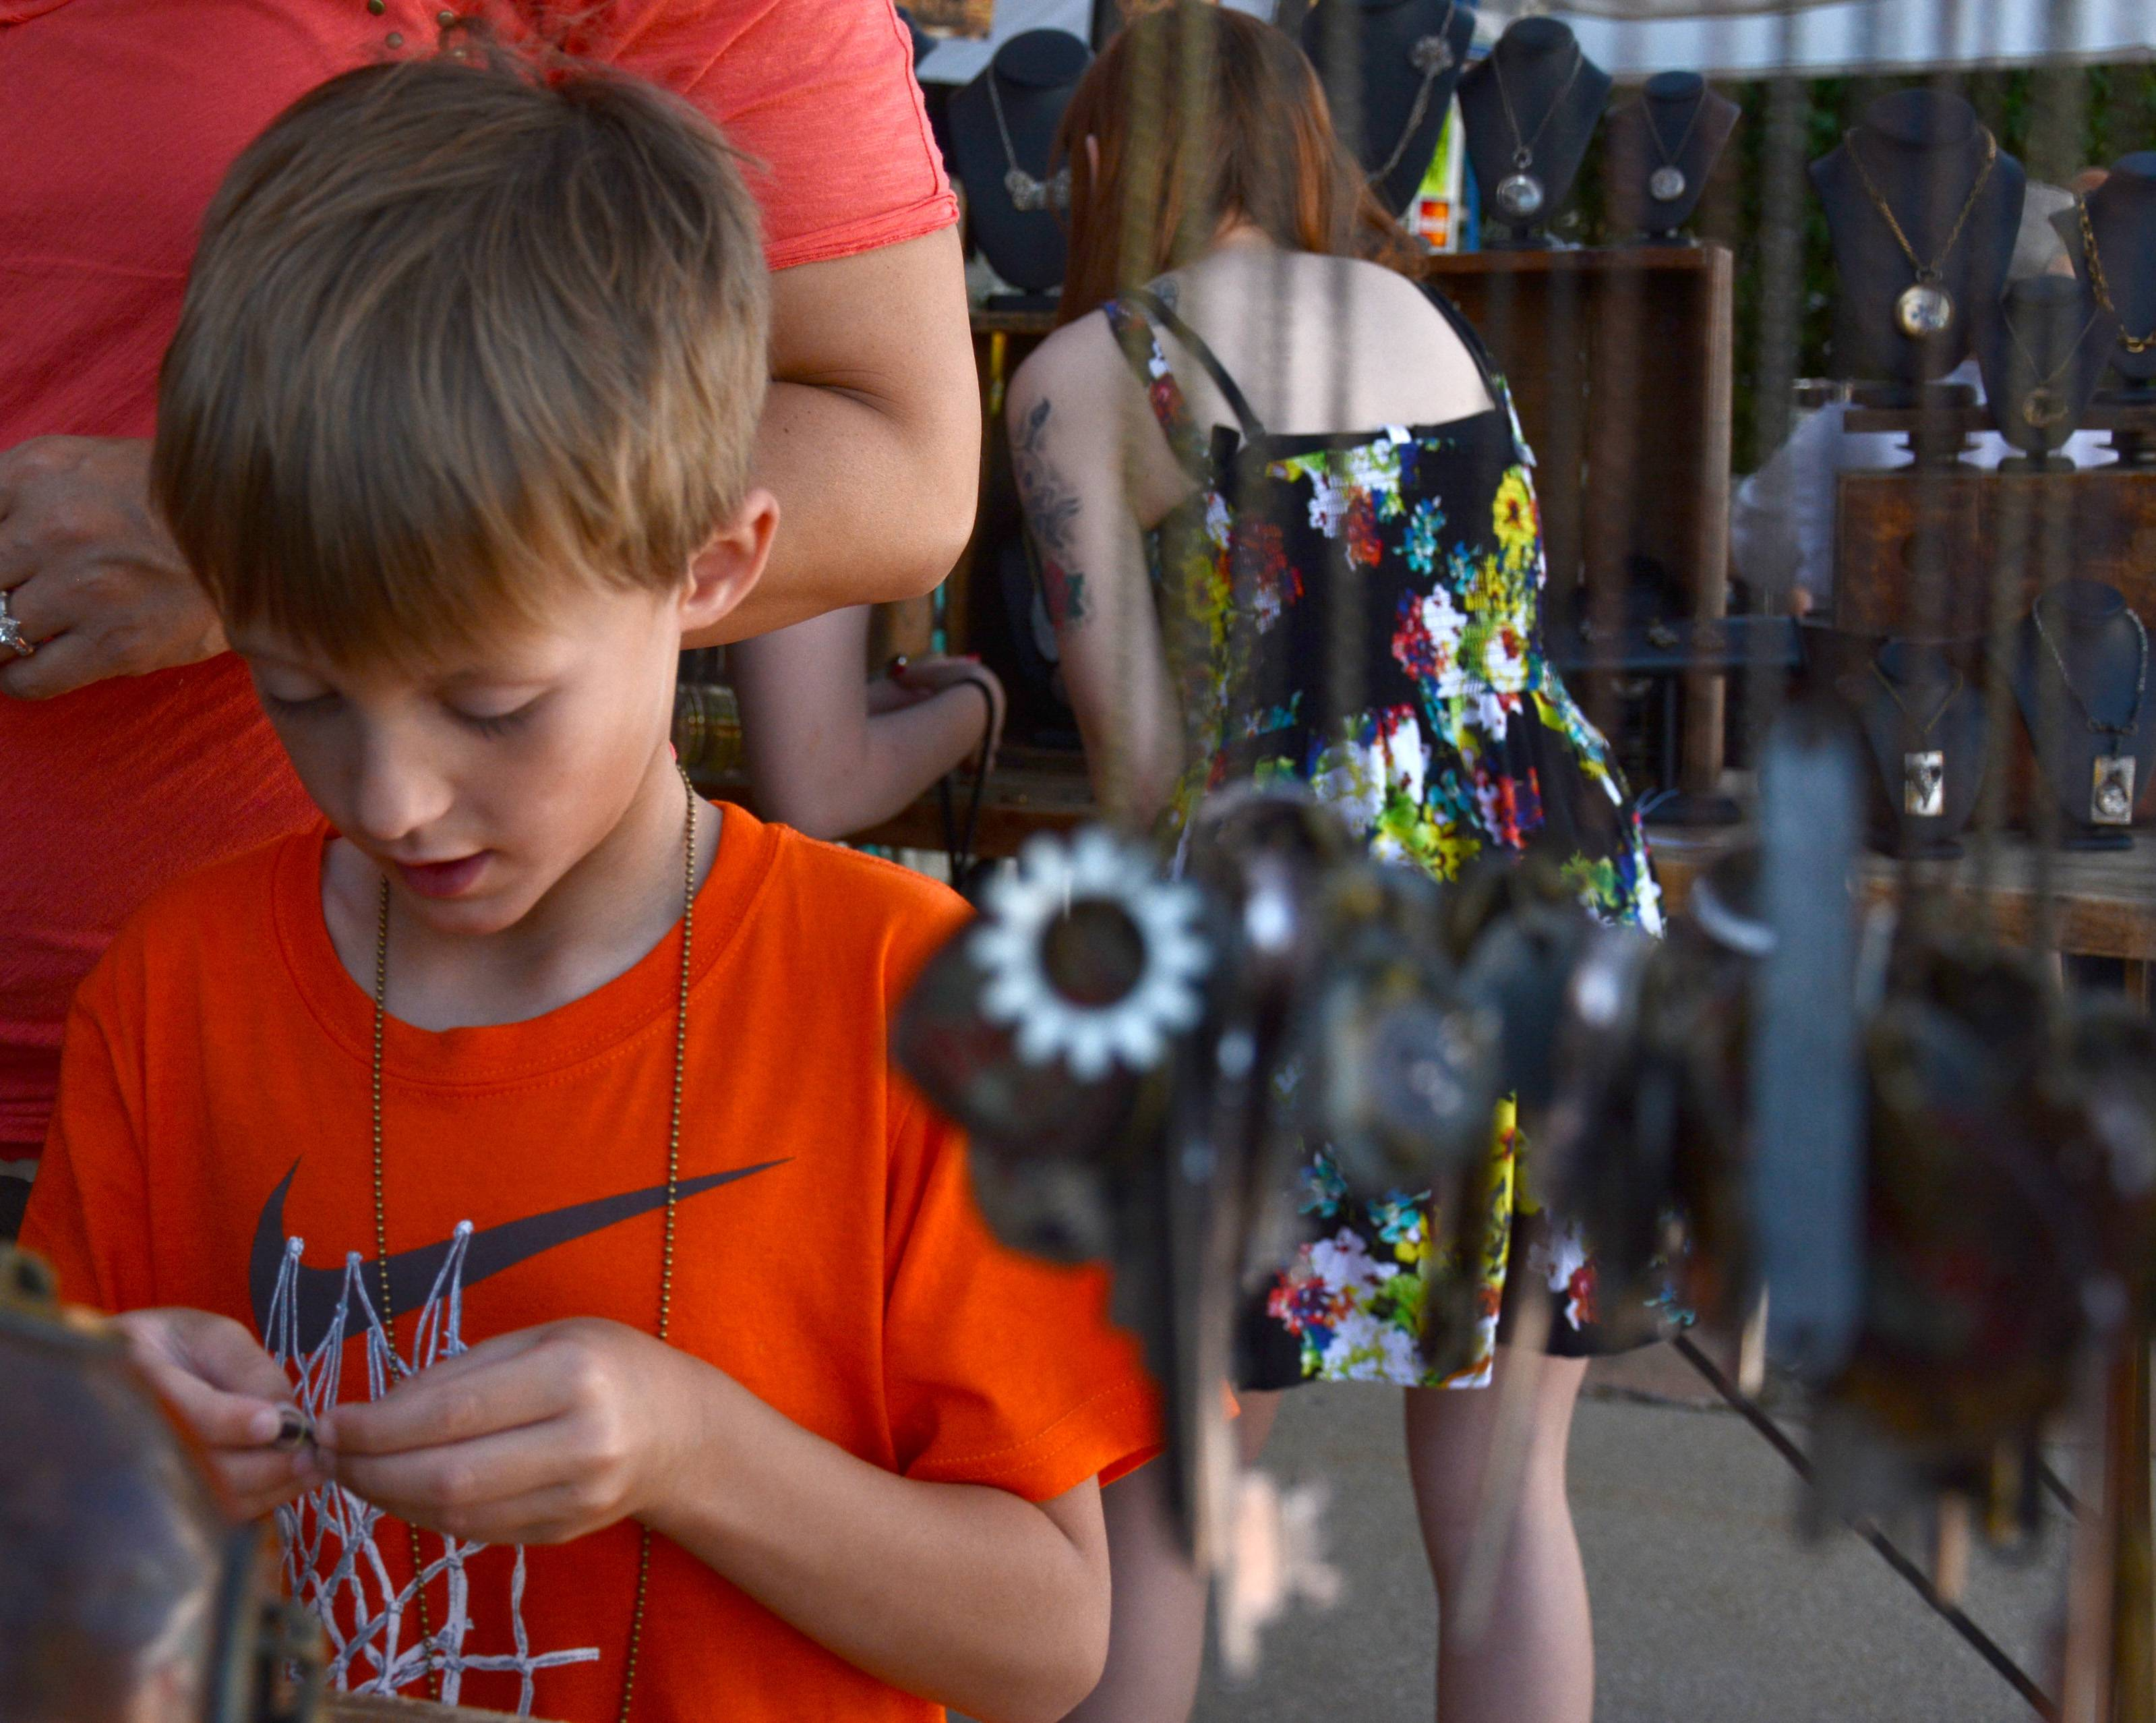 Lake Finley, of Lake Forest, looks at a necklace made from old keys and clock parts at last year's festival.